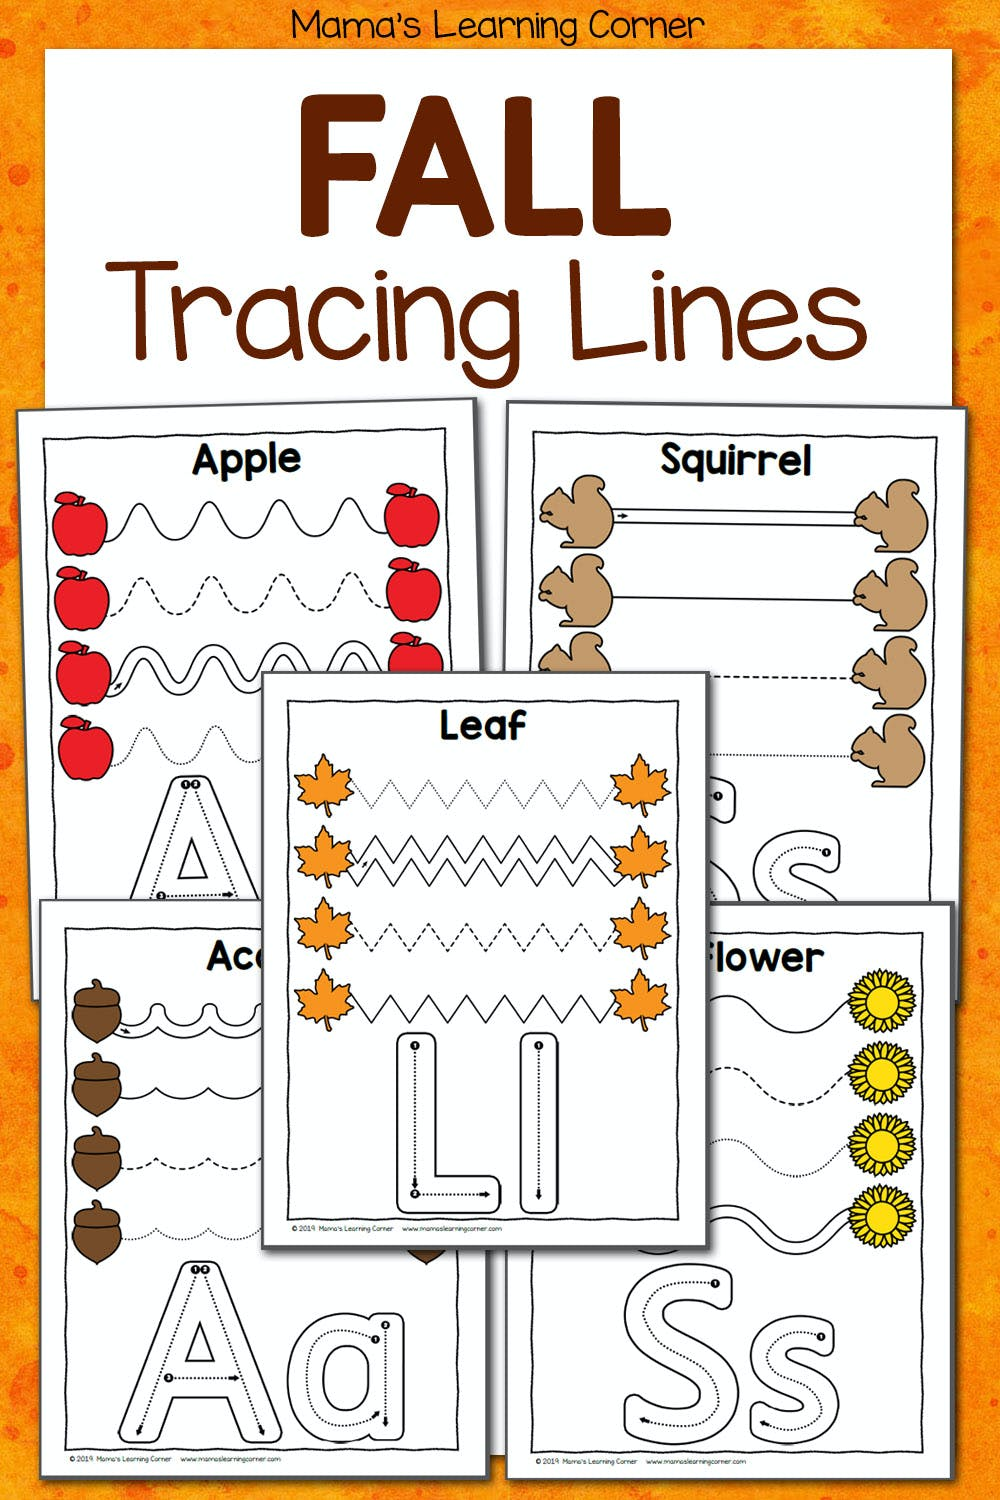 hight resolution of Fall Tracing Worksheets for Preschool - Mamas Learning Corner